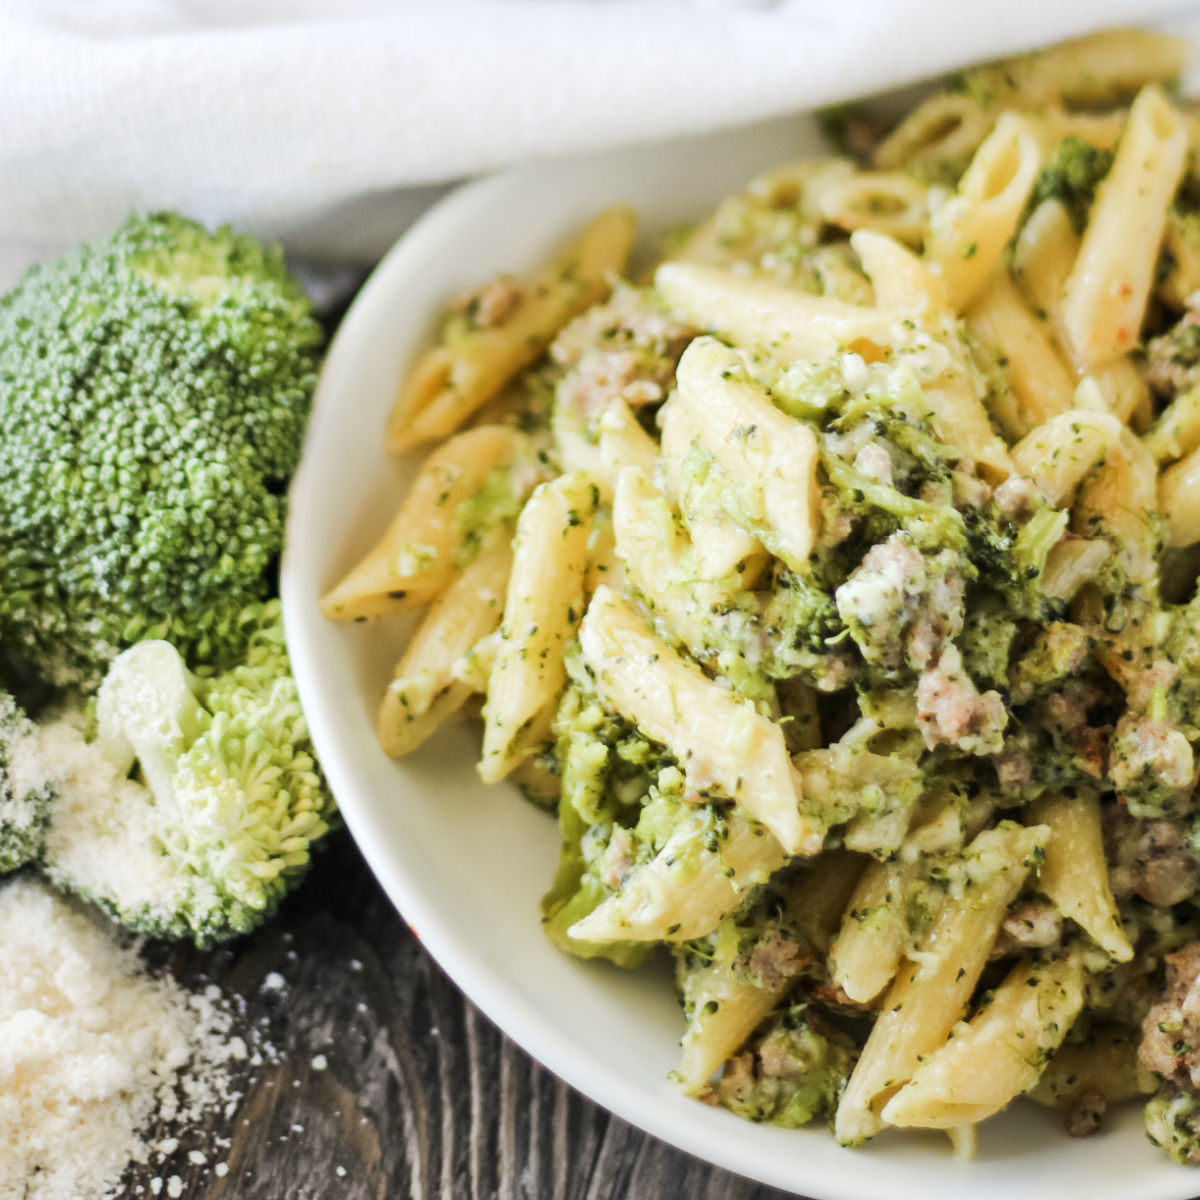 plate of creamy pasta with broccoli and Italian sausage